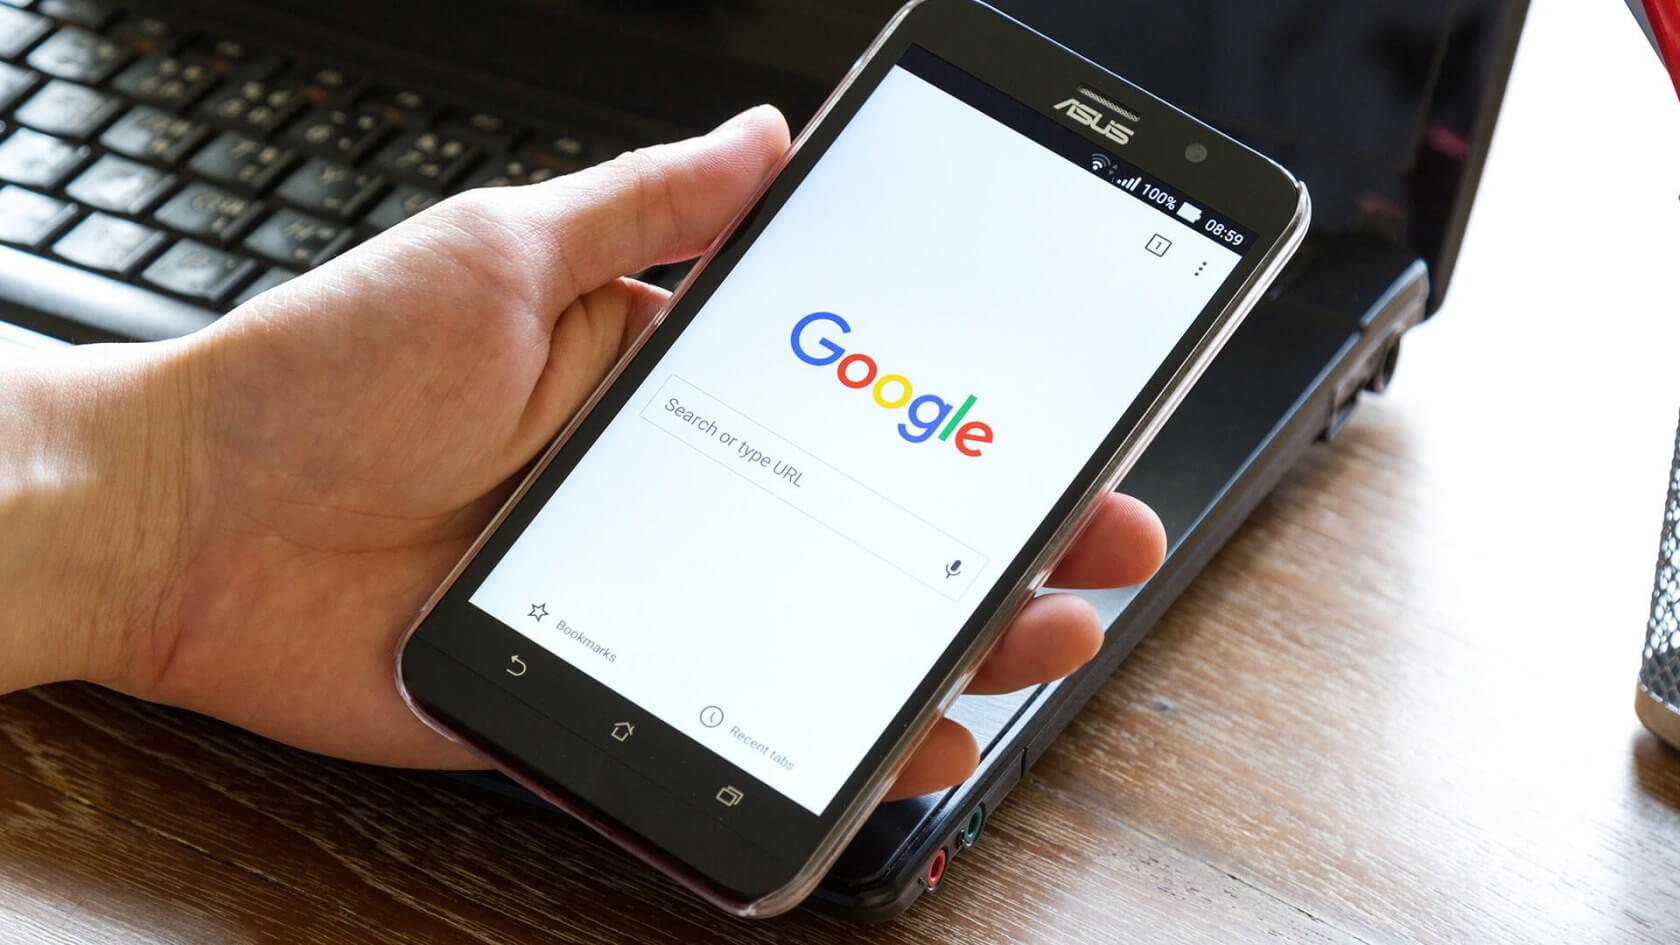 Google Search's latest mobile facelift makes ads and website branding more obvious